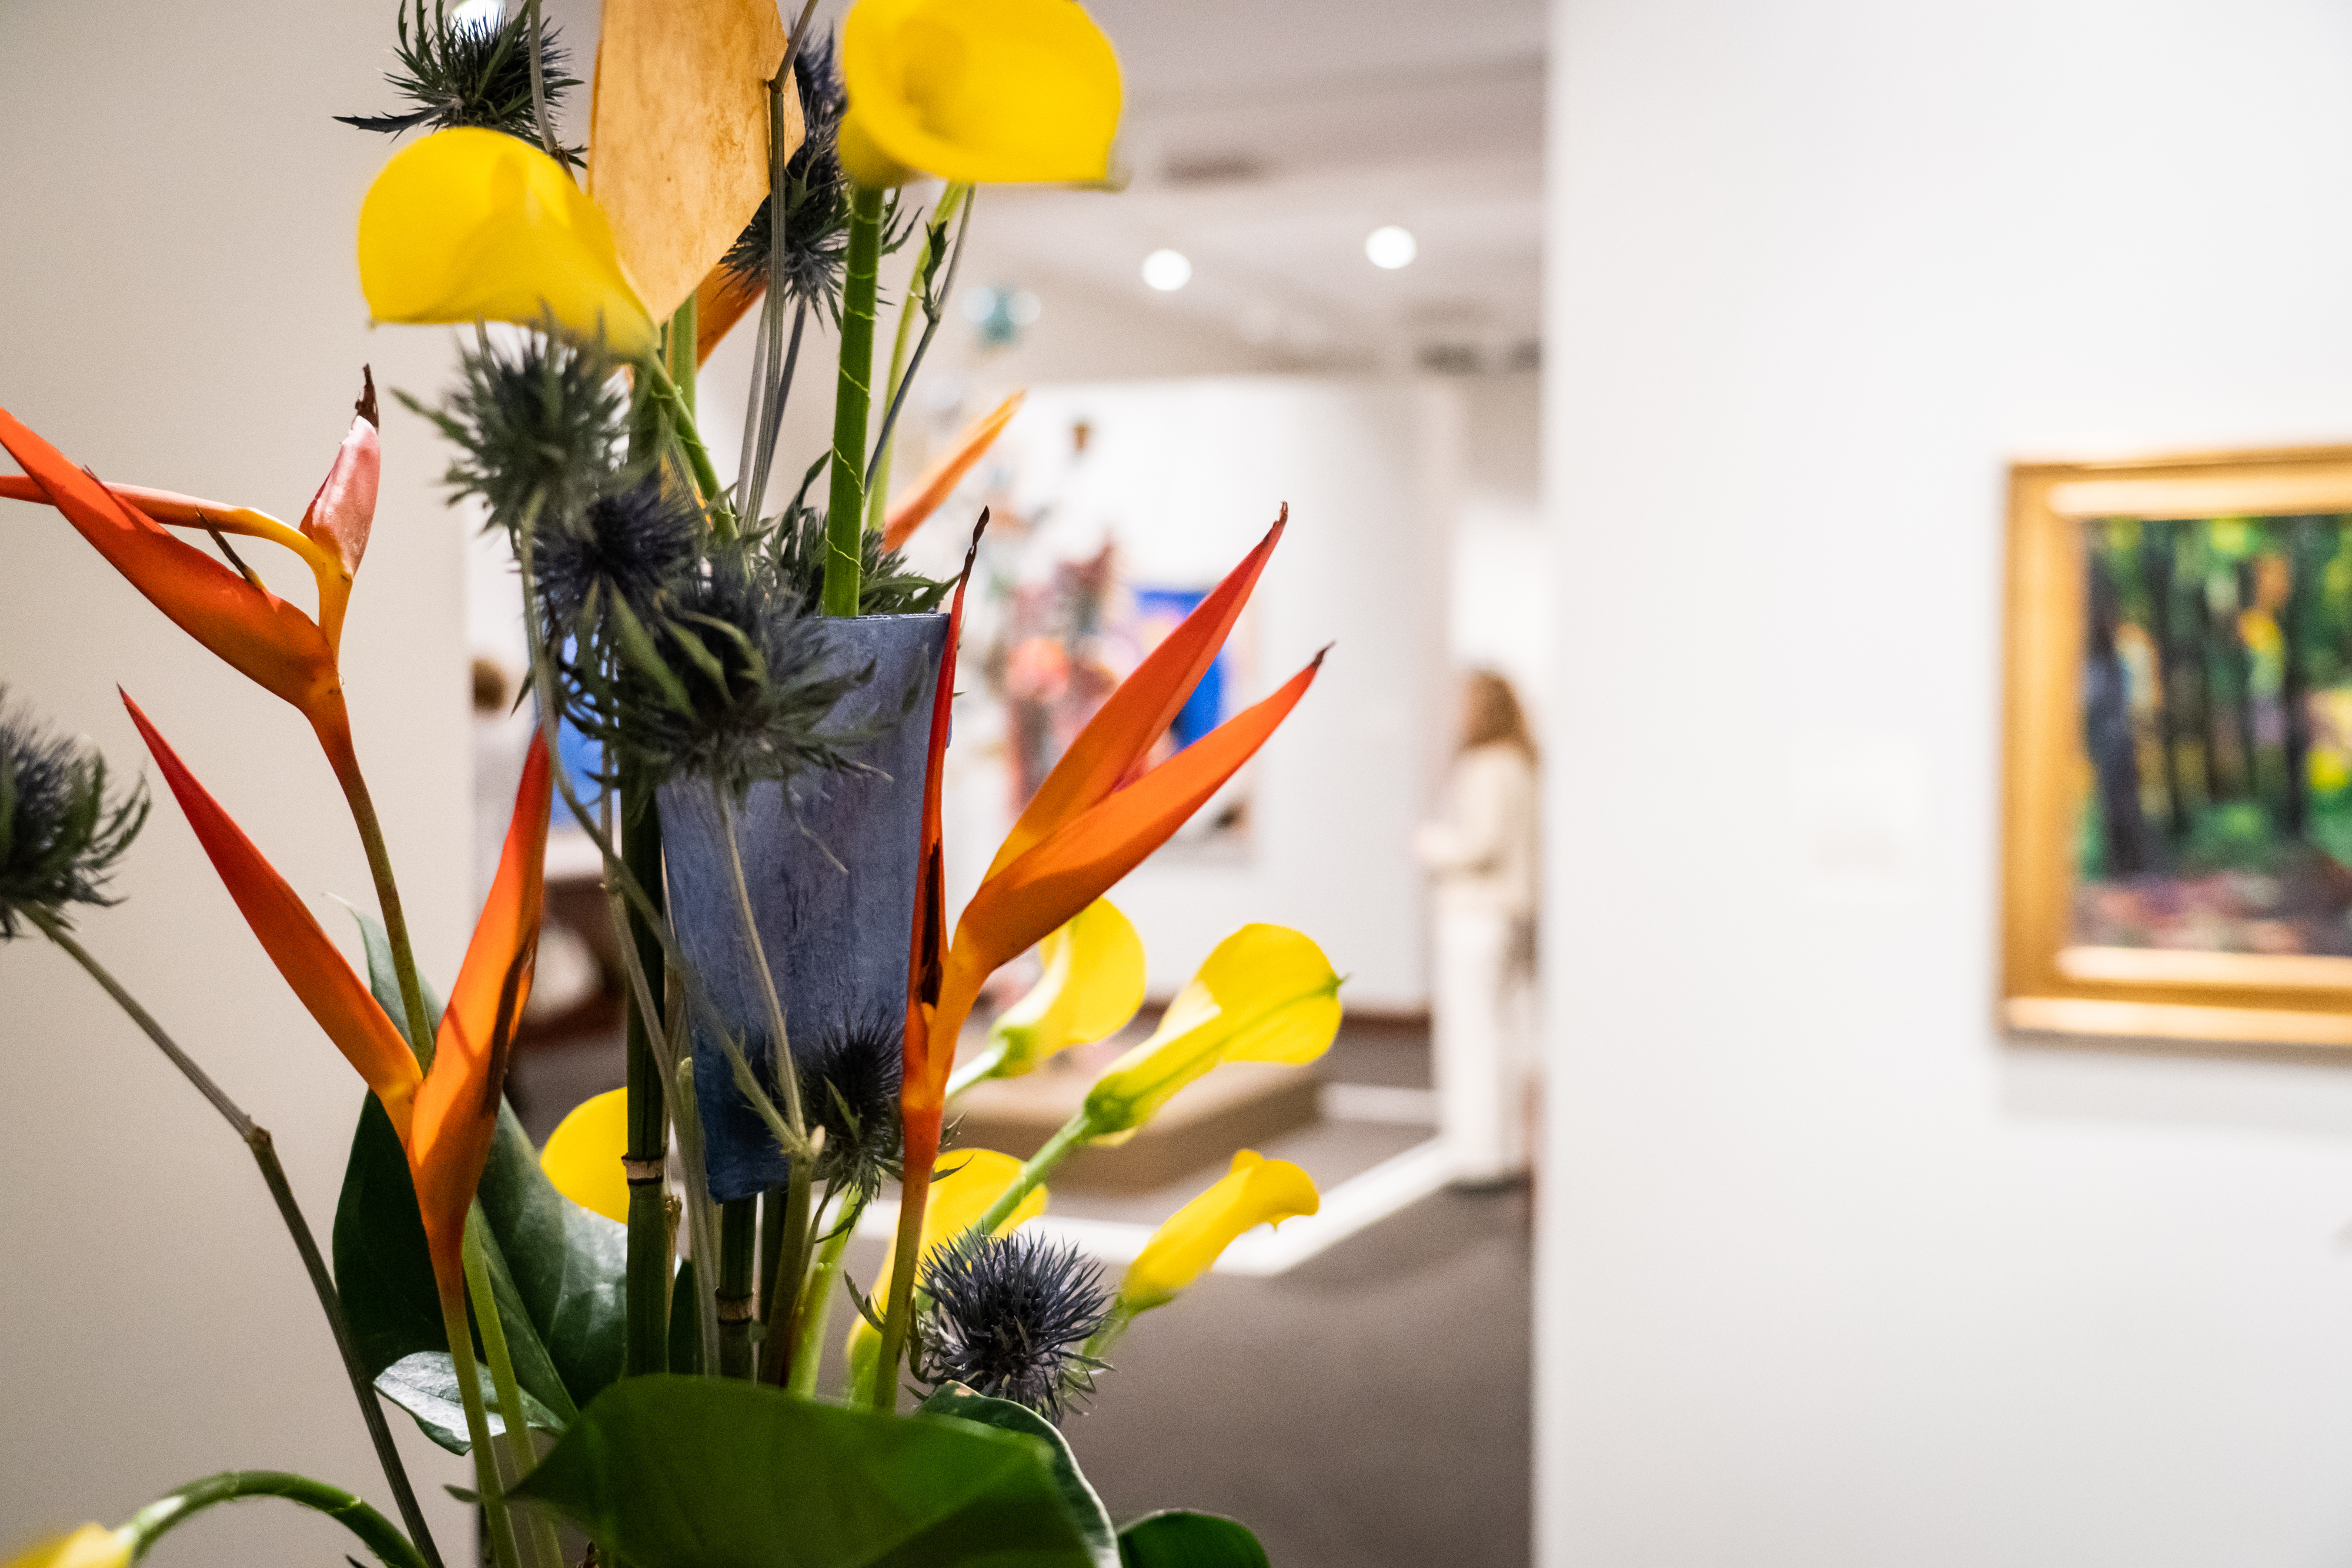 The camera is focused on a colorful floral arrangement in the MAM galleries. Further back and out of focus, a painting is hanging on the wall and a woman is looking at Nick Cave's sound suit.